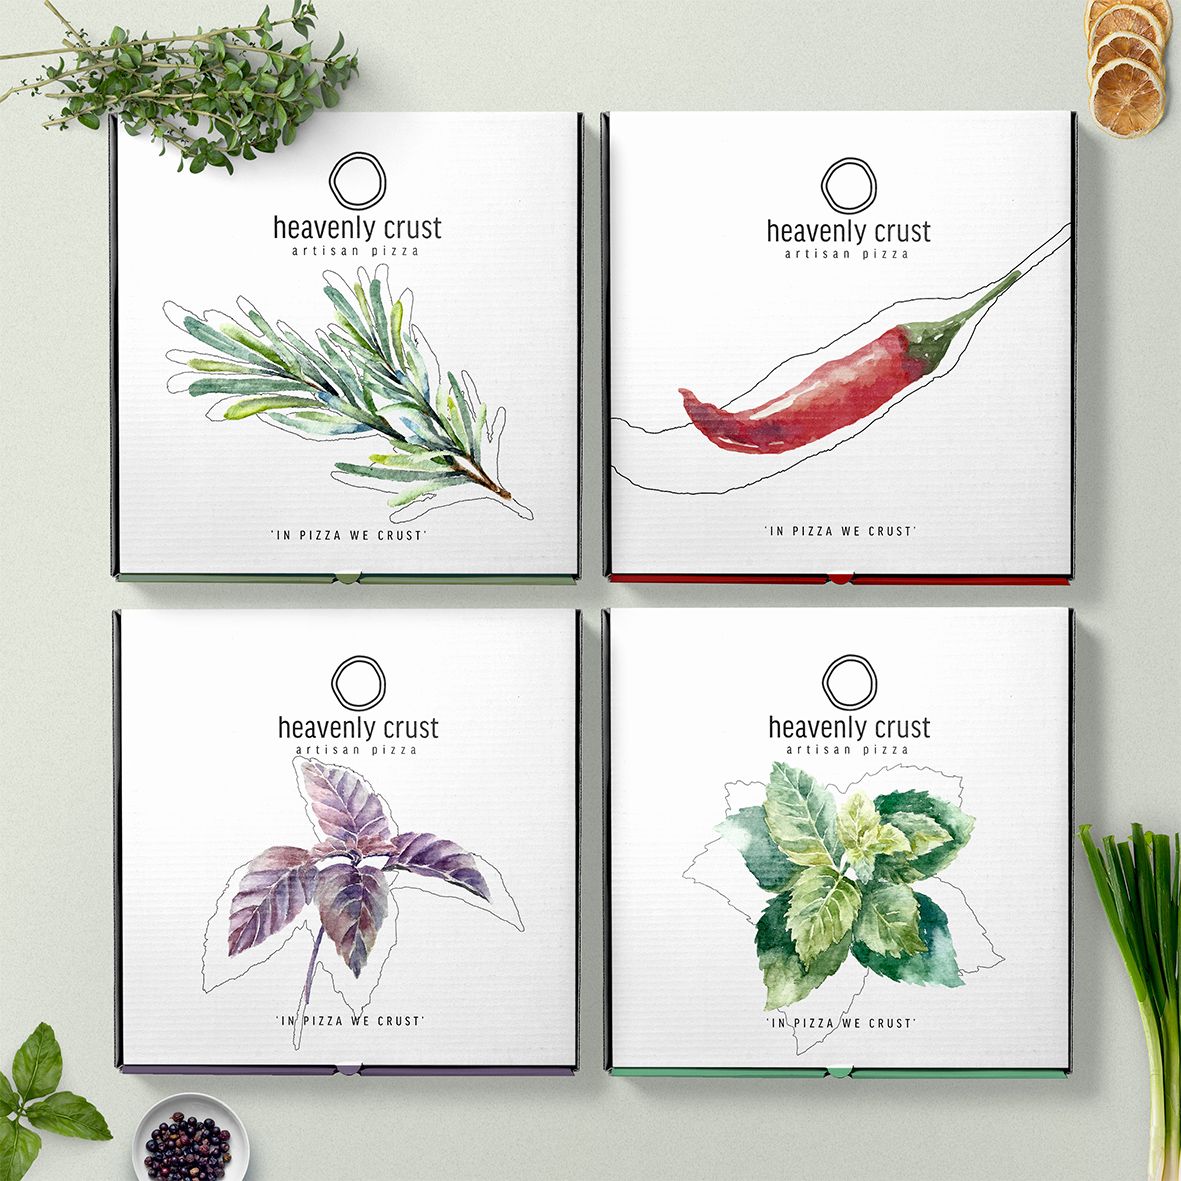 heavenly_crust_pizza_package_packaging_restaurant_identity_herbal